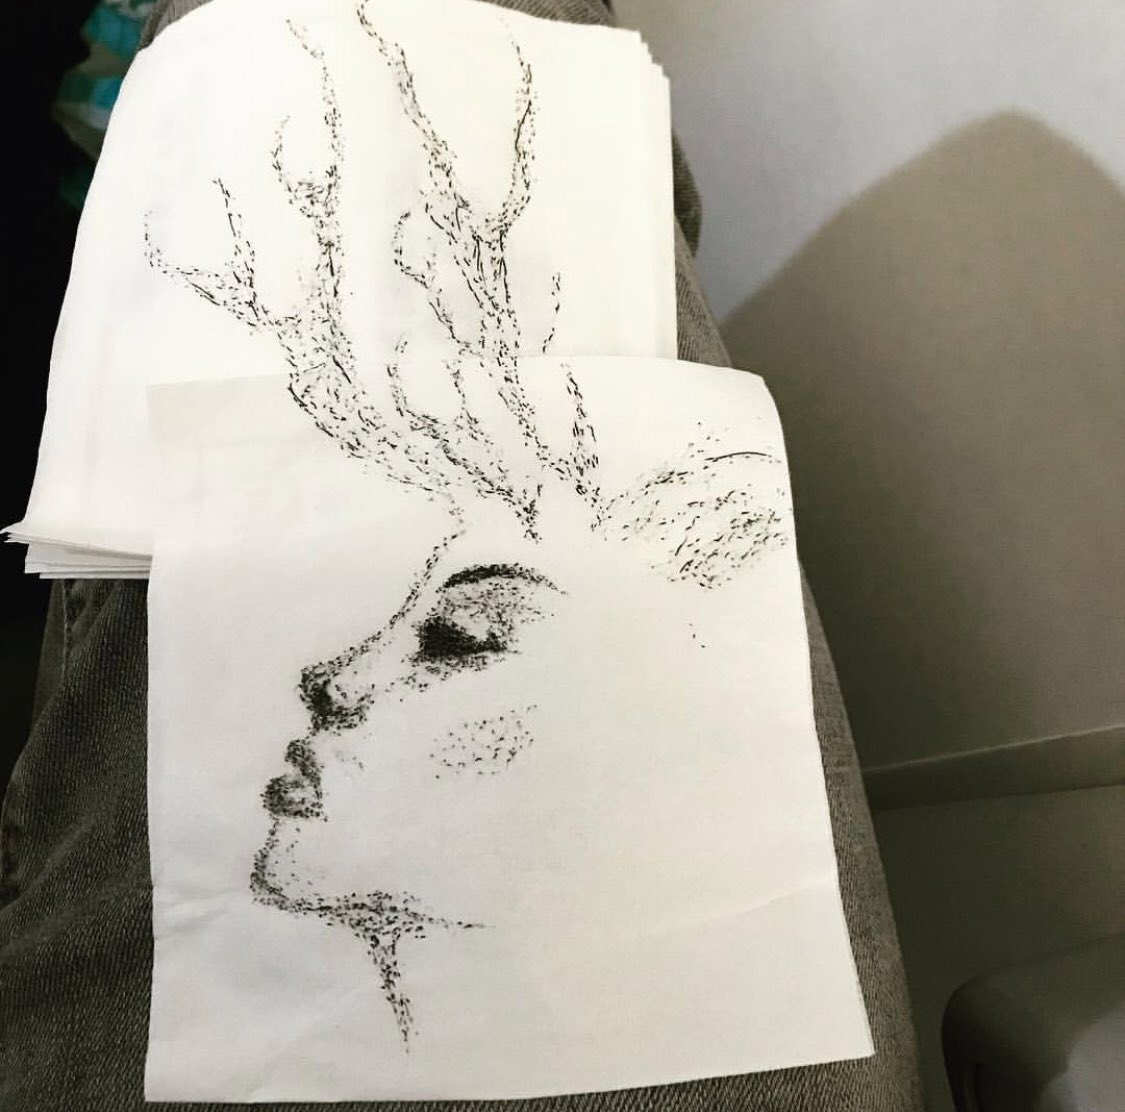 I love drawing on airplane napkins. Haha i tried to draw a woman with antlers. ????????... hmmmm Better luck next time. https://t.co/xnl0HoB8s0